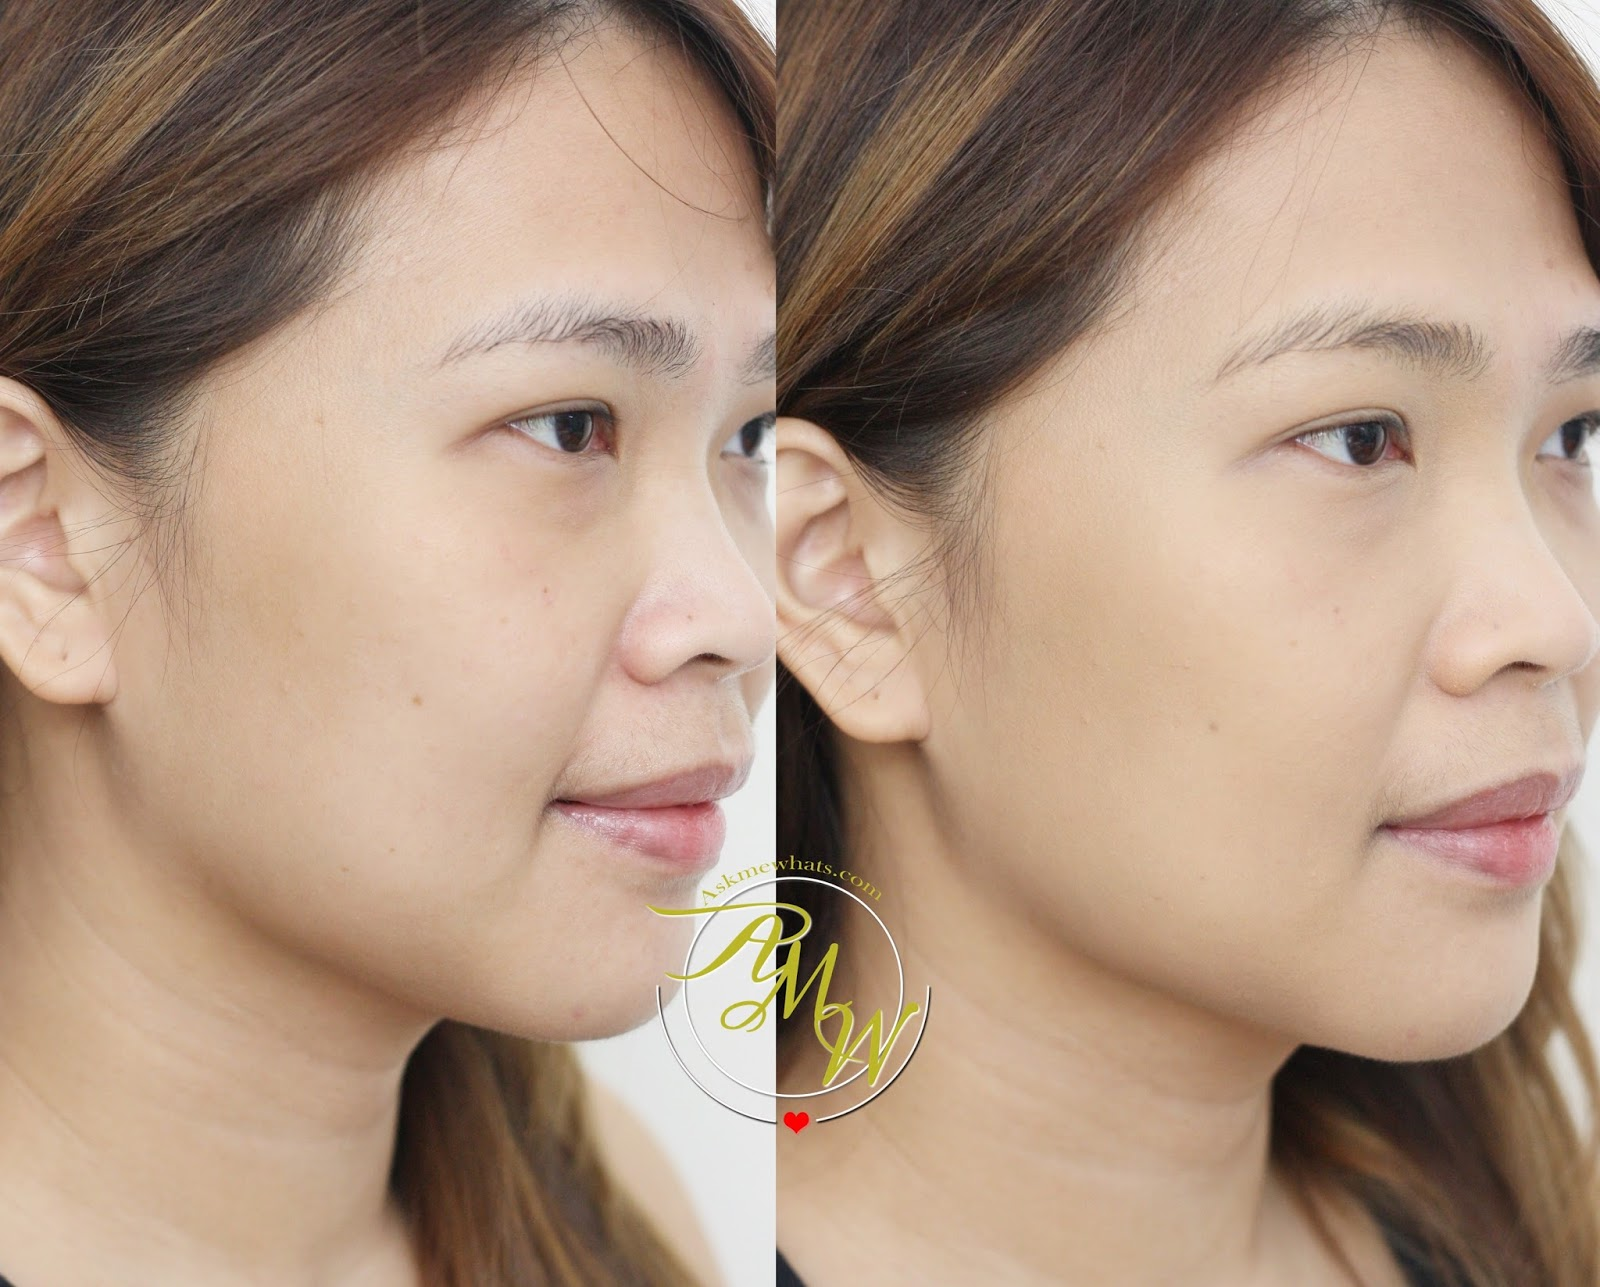 Askmewhats Top Beauty Blogger Philippines Skincare Makeup Review Loreal Paris Infallible Pro Matte Foundation Before And After Photo Of 24hr